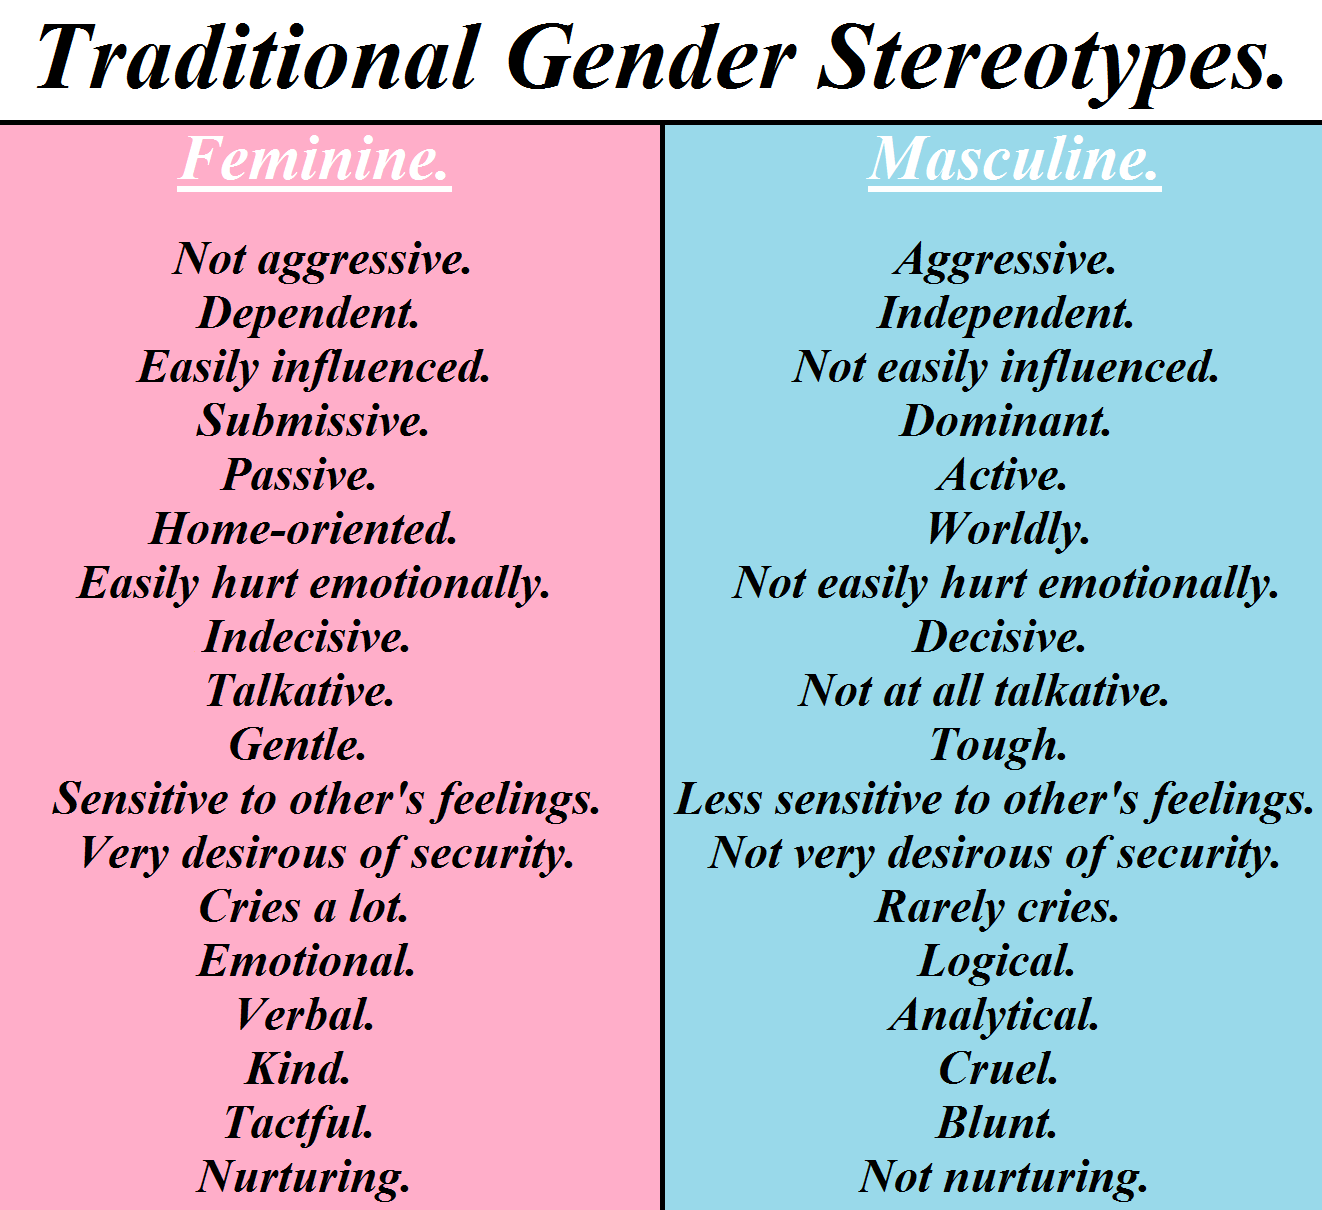 the stereotyping of women in society A new study finds that gender stereotypes are as strong today as they were 30 years ago changes in the activities and representation of women and men in society have unquestionably occurred since the early 1980s however.